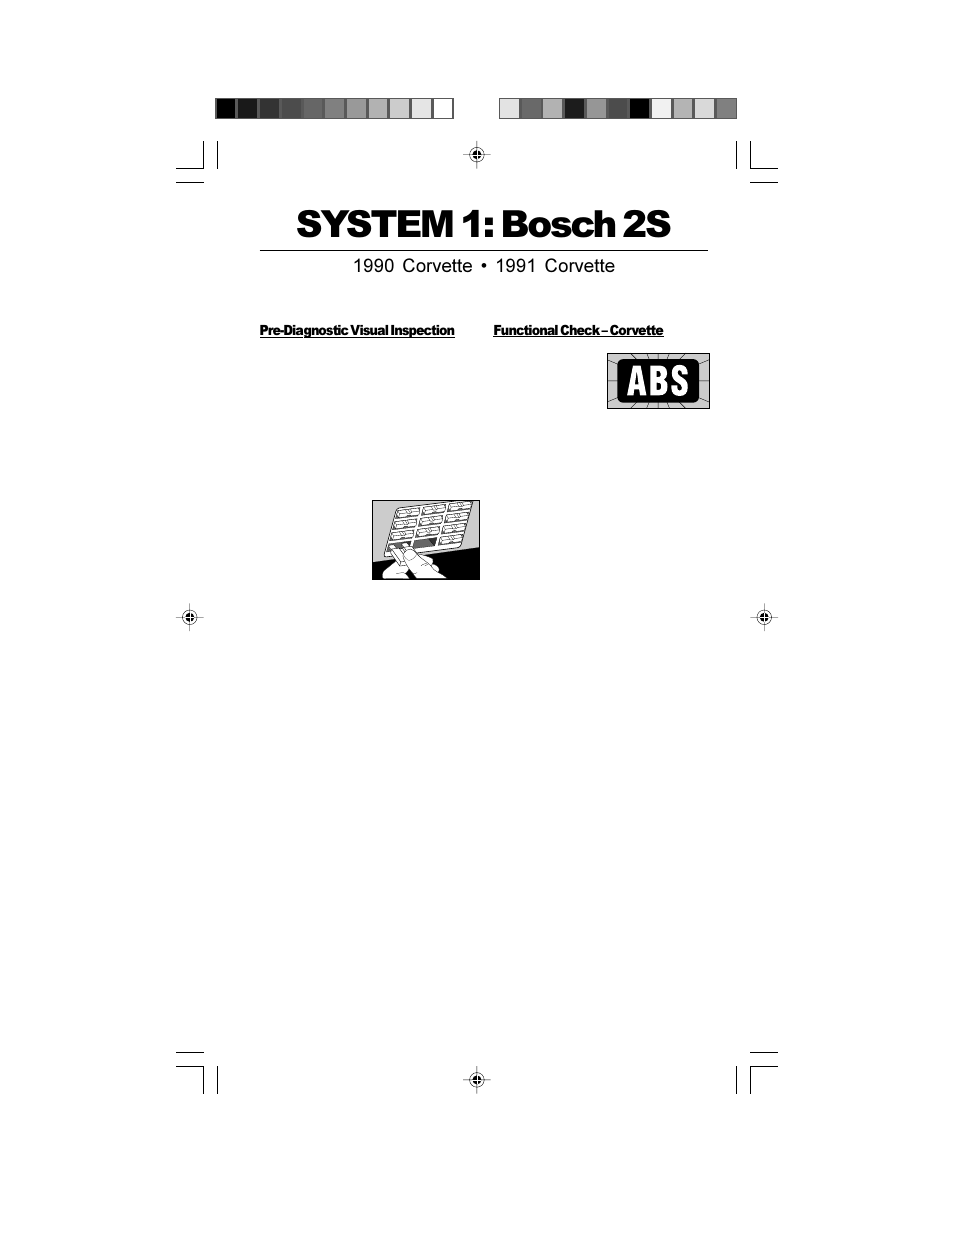 System 1 Bosch 2s Actron Gm Code Scanner Cp9001 User Manual 1990 Corvette Fuse Box Page 53